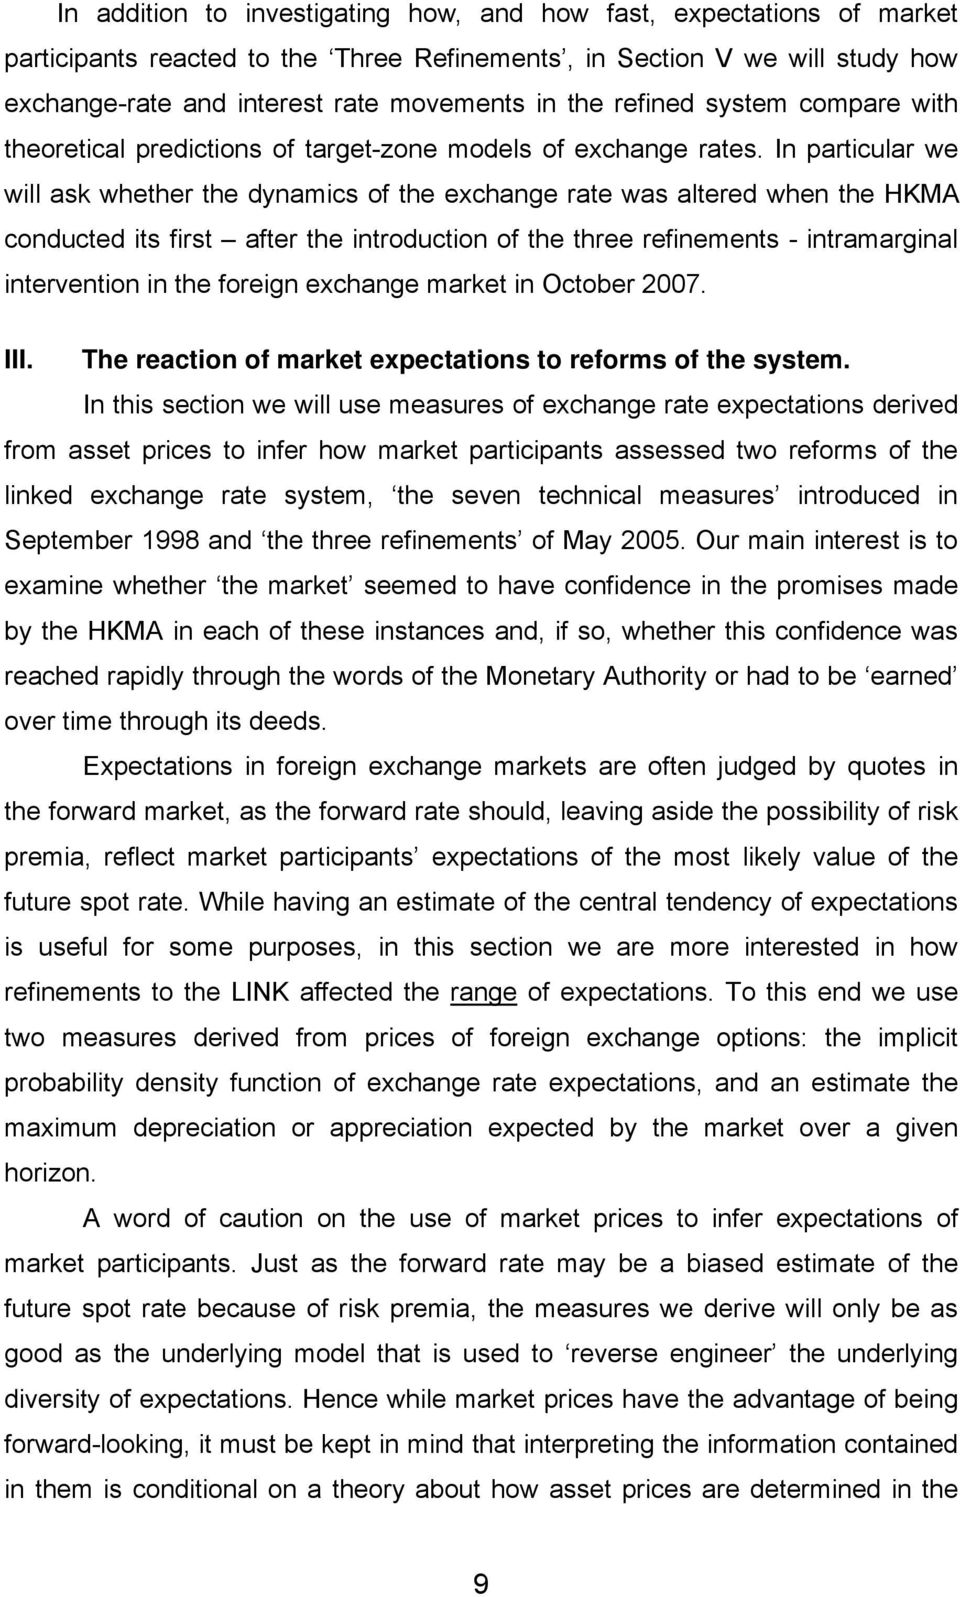 In particular we will ask whether the dynamics of the exchange rate was altered when the HKMA conducted its first after the introduction of the three refinements - intramarginal intervention in the